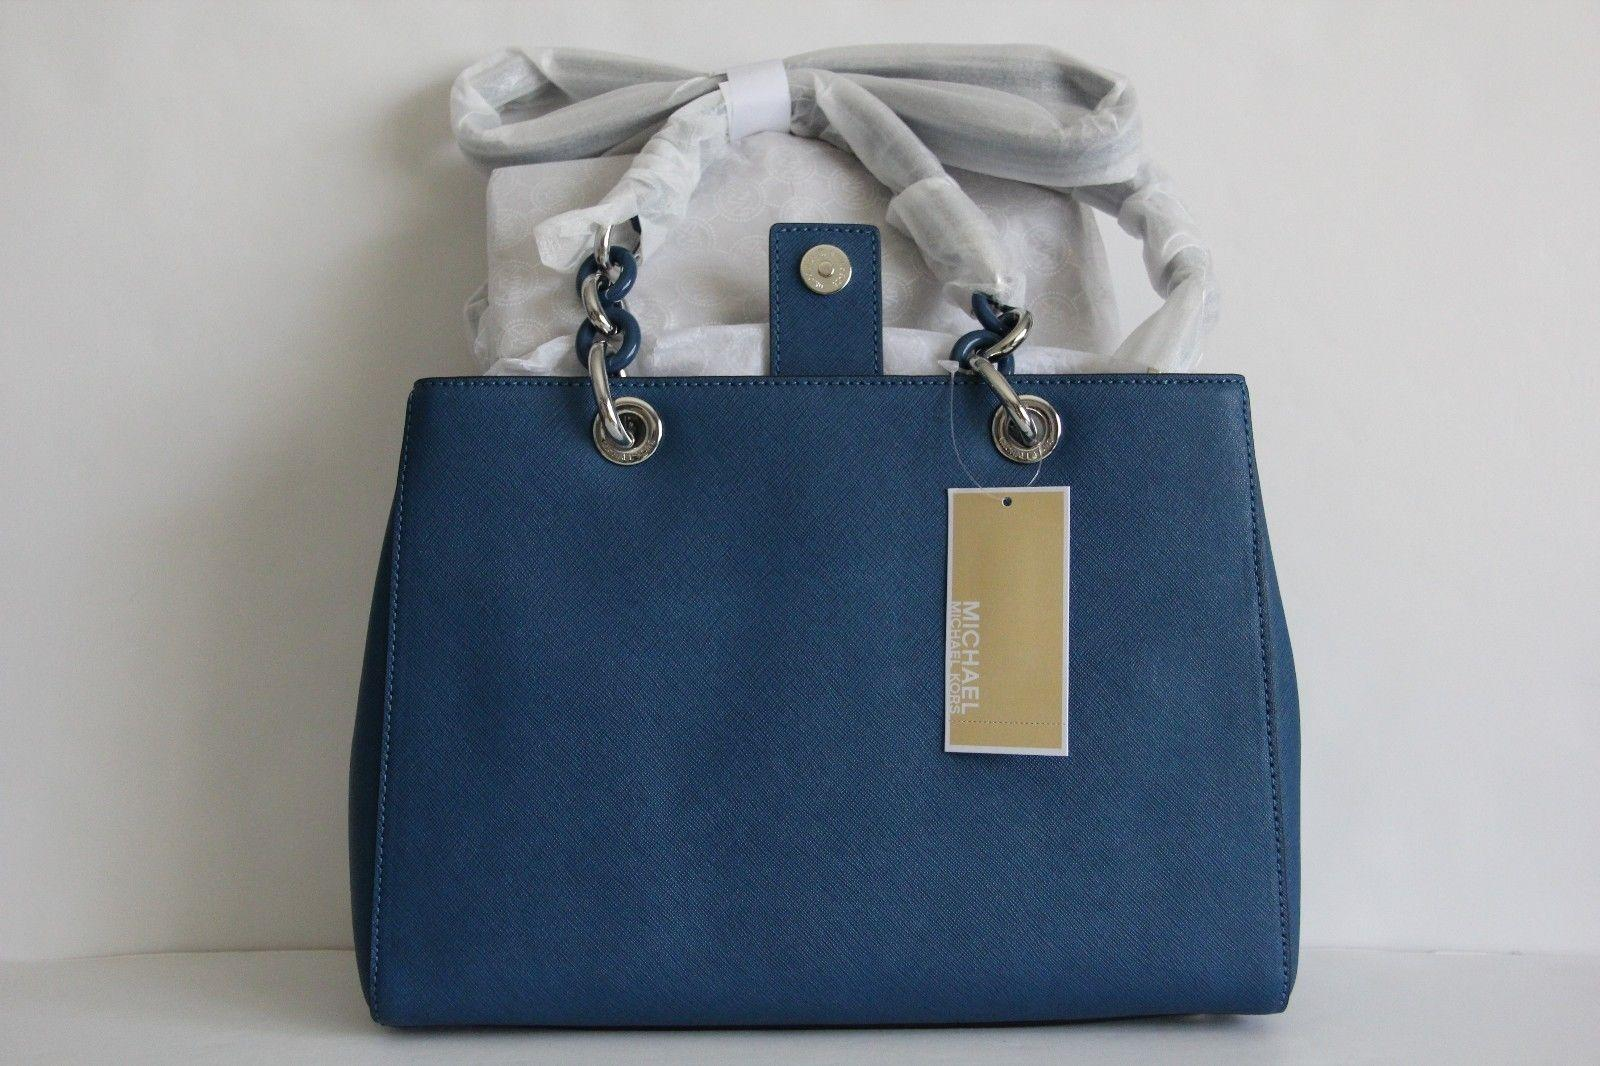 f4afbb85eaa5 ... sweden michael kors cynthia medium saffiano leather satchel in steel  blue . 268b0 da75a